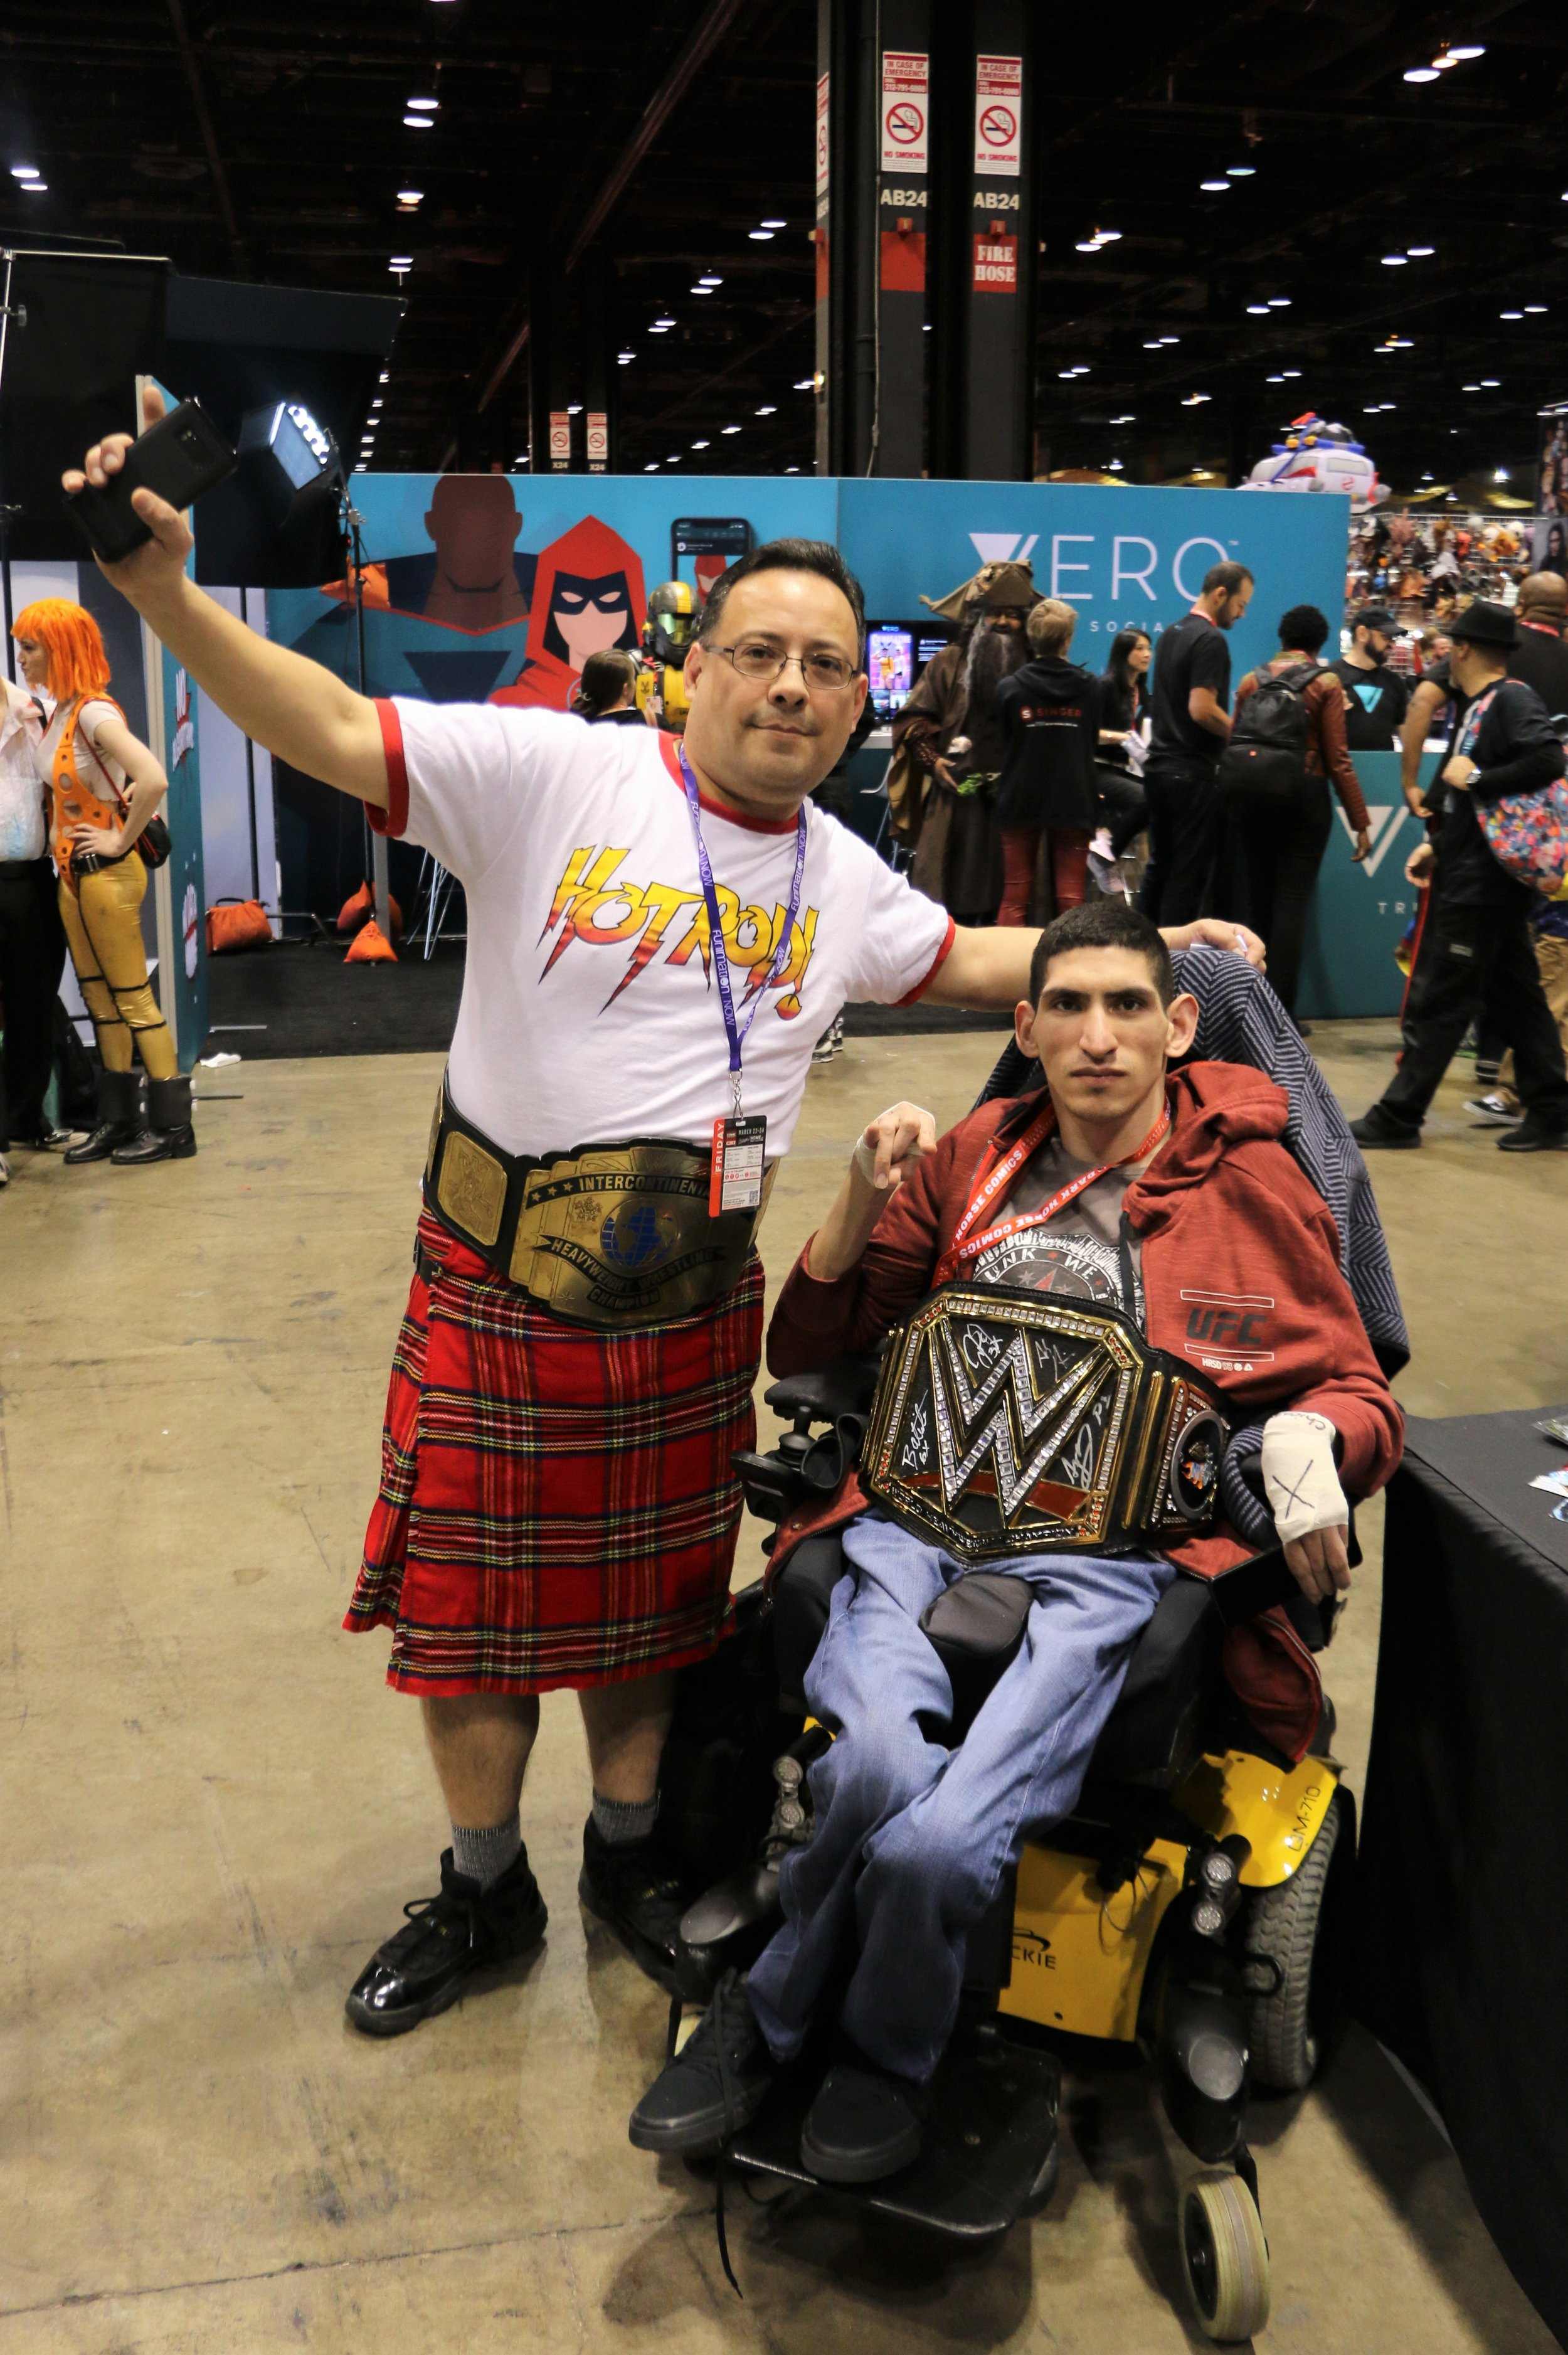 Rowdy Roddy Piper cosplayer poses with Too Sweet Cosplay admin Niko.